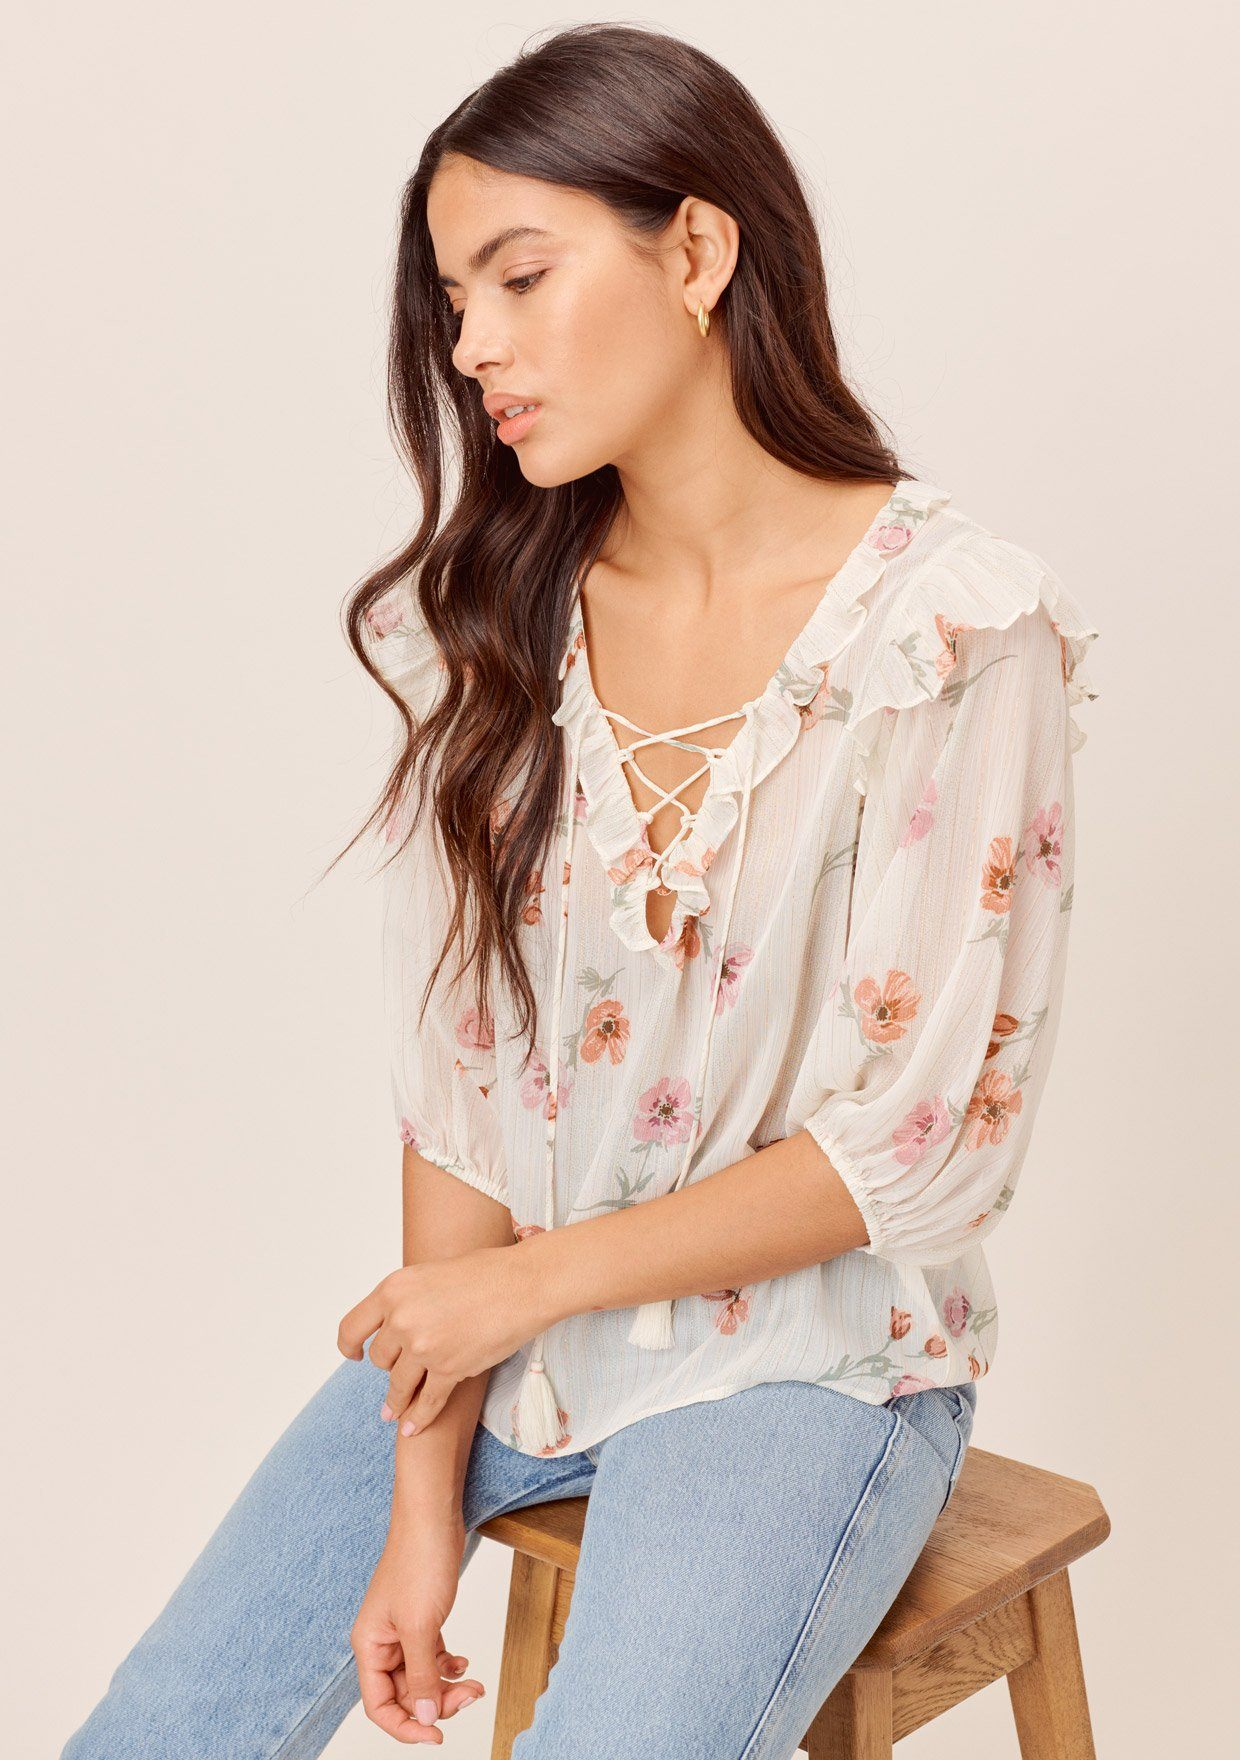 [Color: Ivory/Peach] Lovestitch ivory/peach Floral printed, lace-up front top with ruffled details and tassel ties.